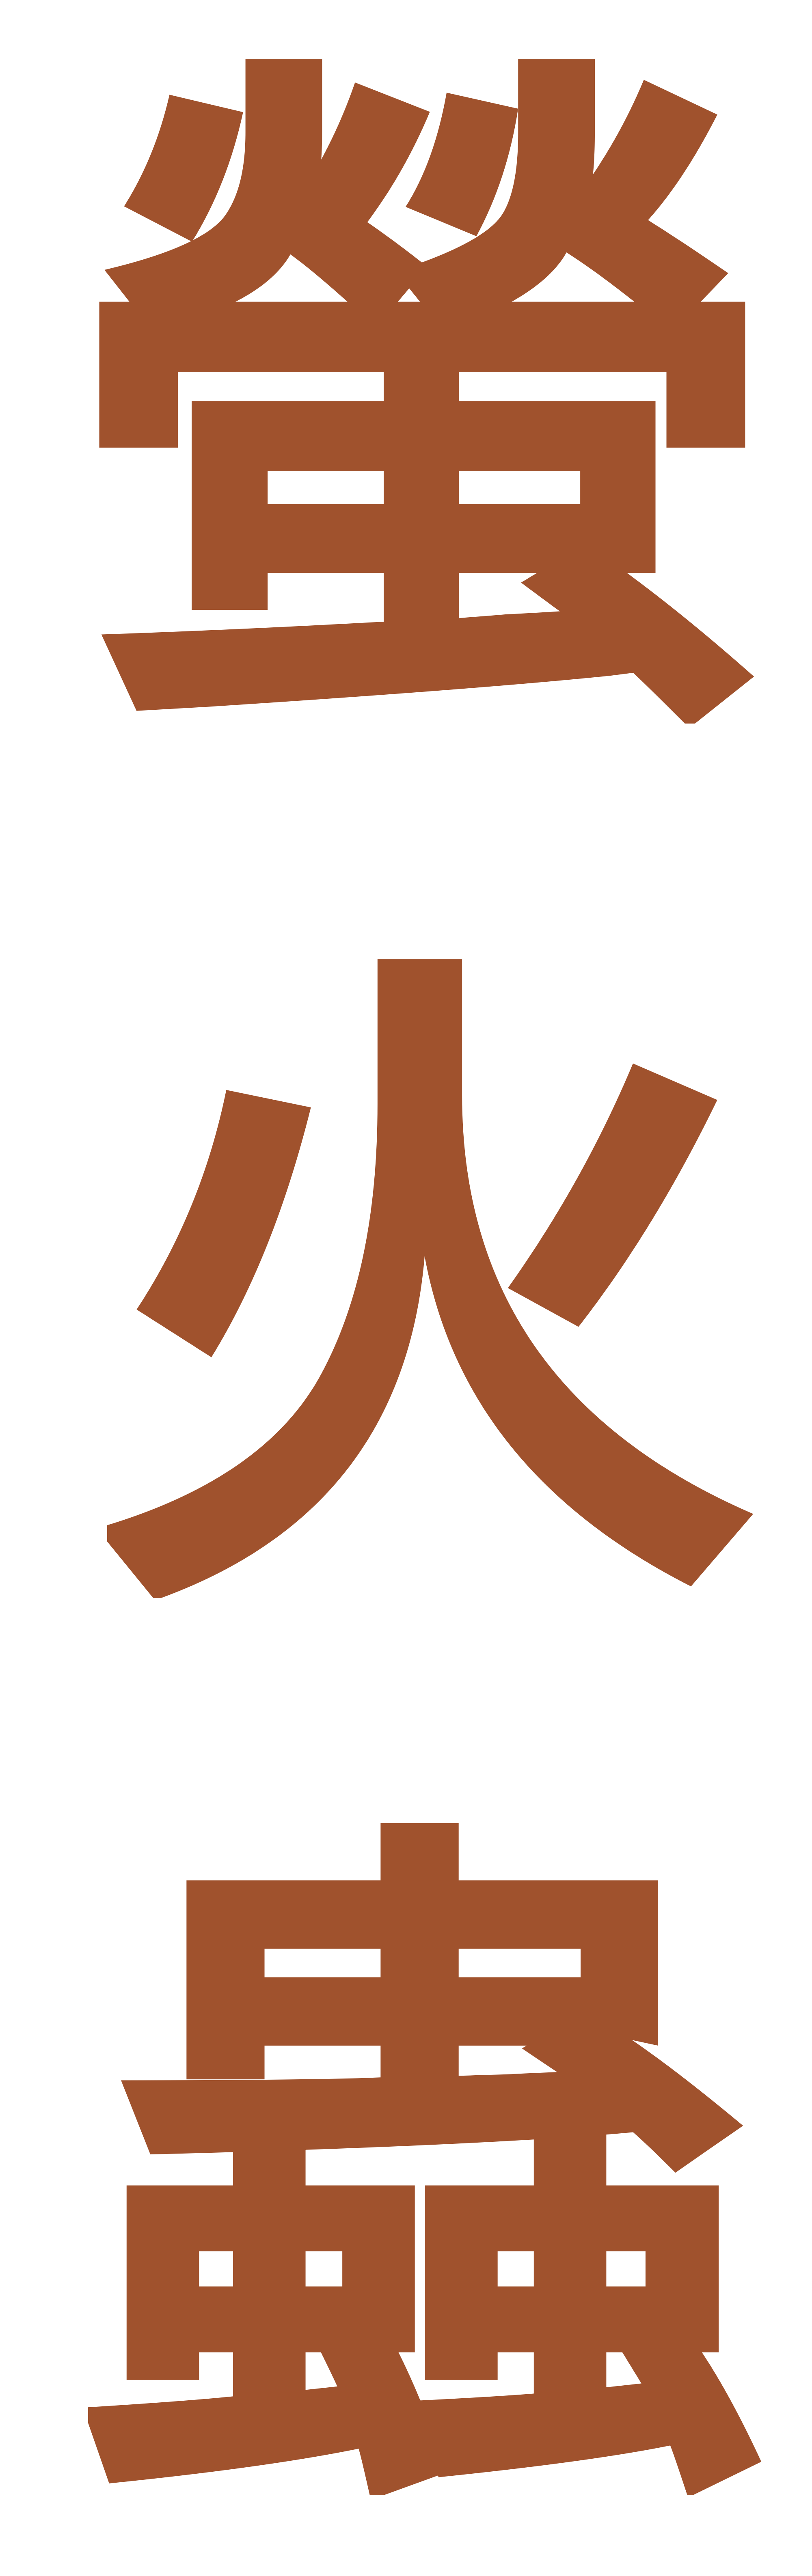 Firefly svg serenity. File in chinese wikimedia